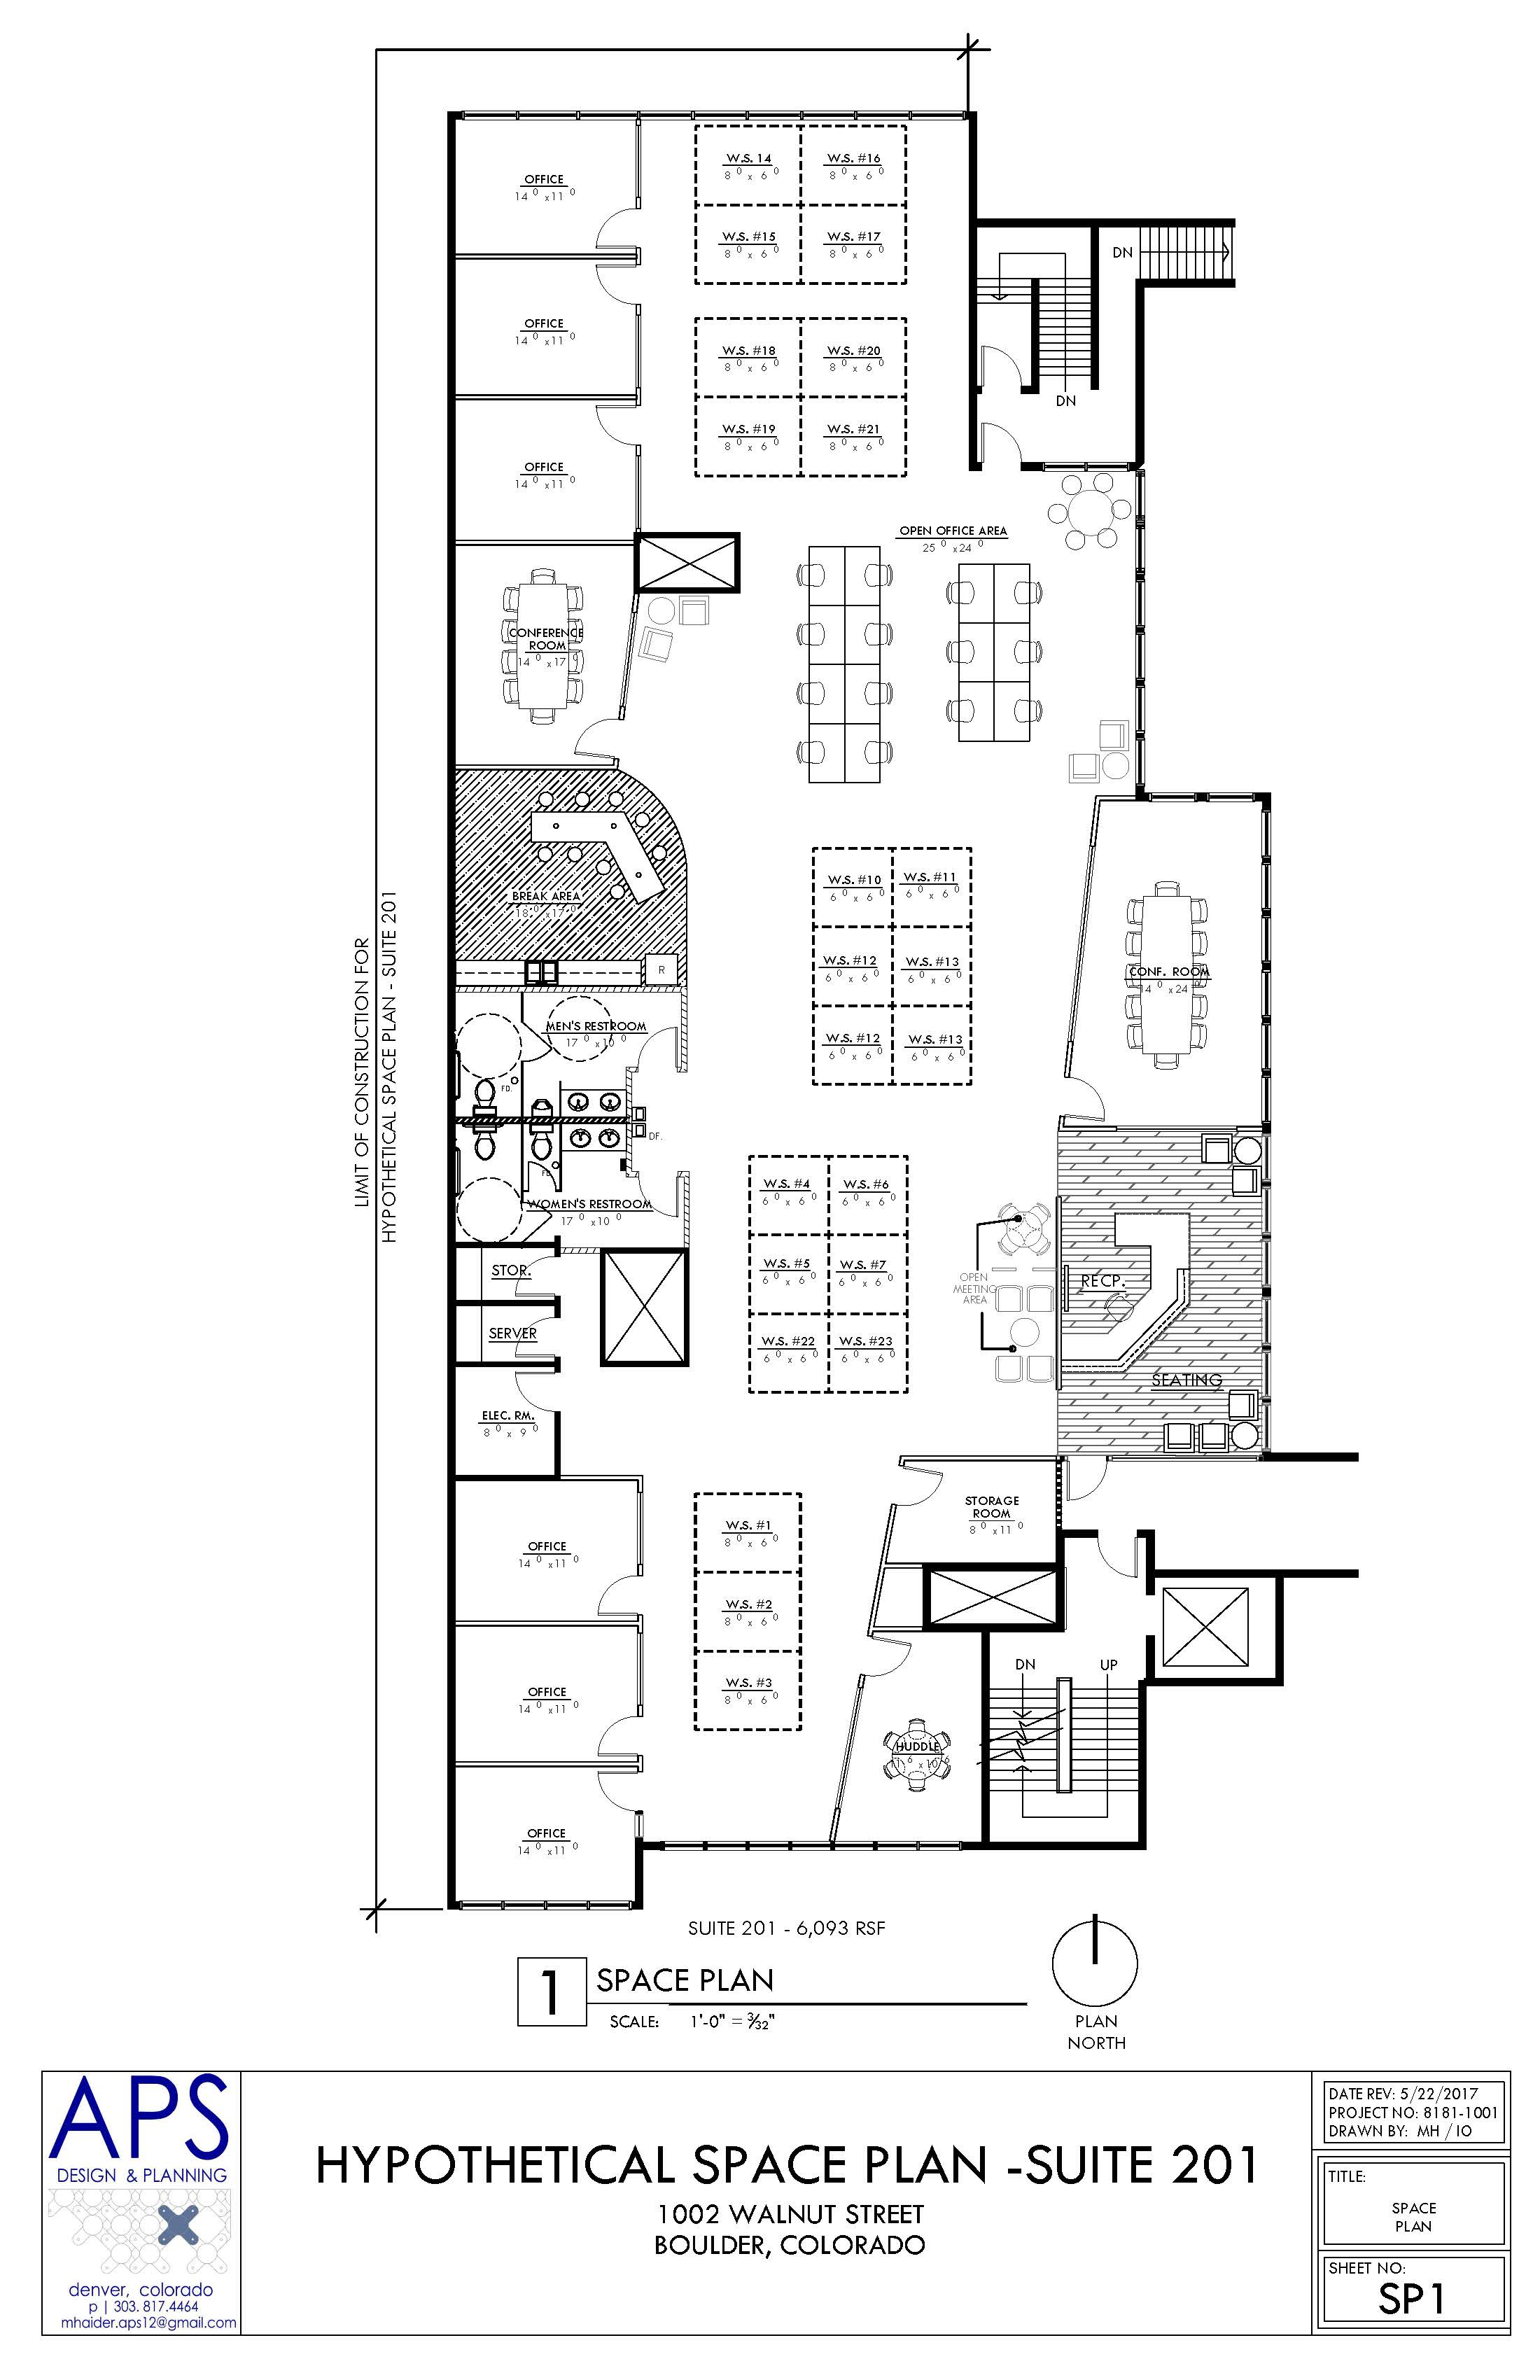 Drawn office office space Lease Space Space 1002 Hypothetical